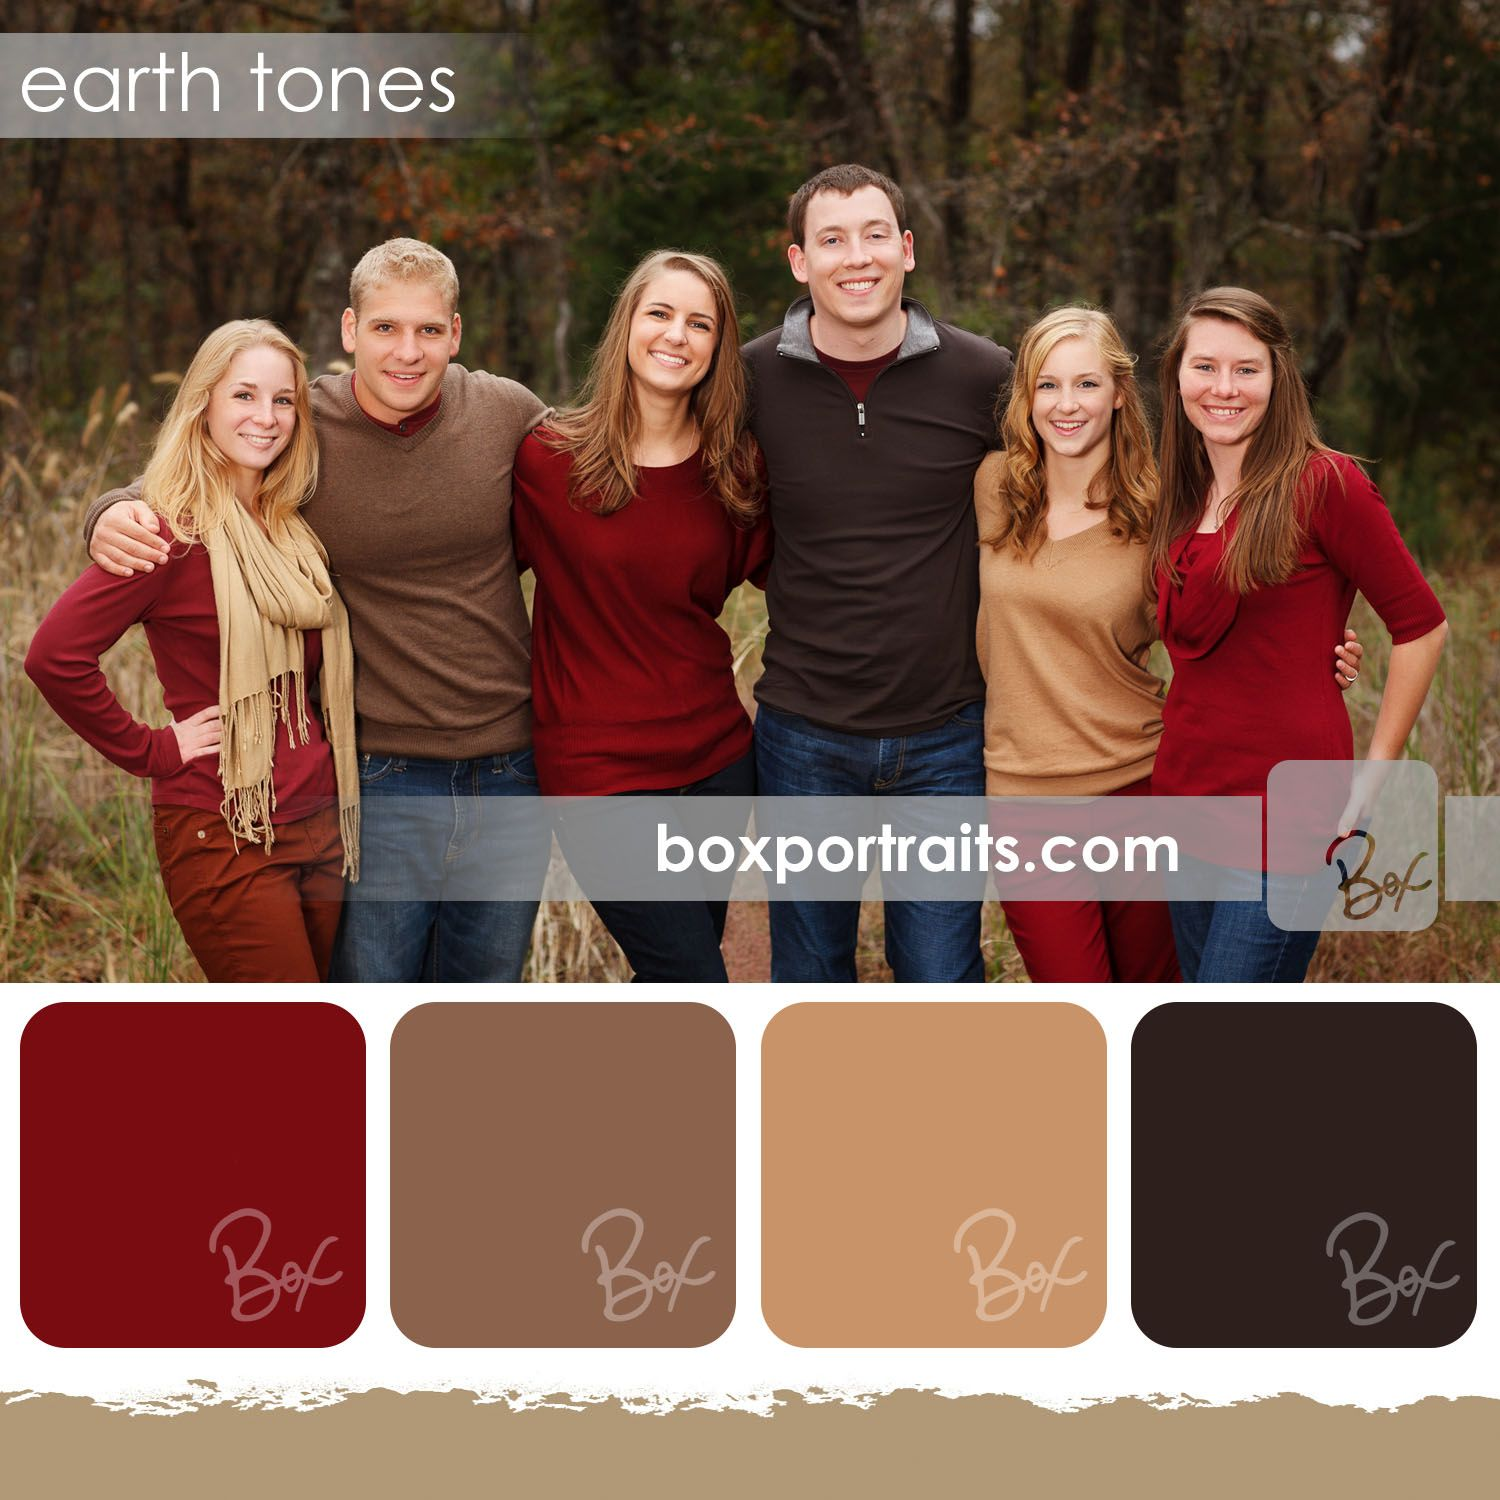 Earth Tones | Pictures | Pinterest | Earth, Family pictures and ...